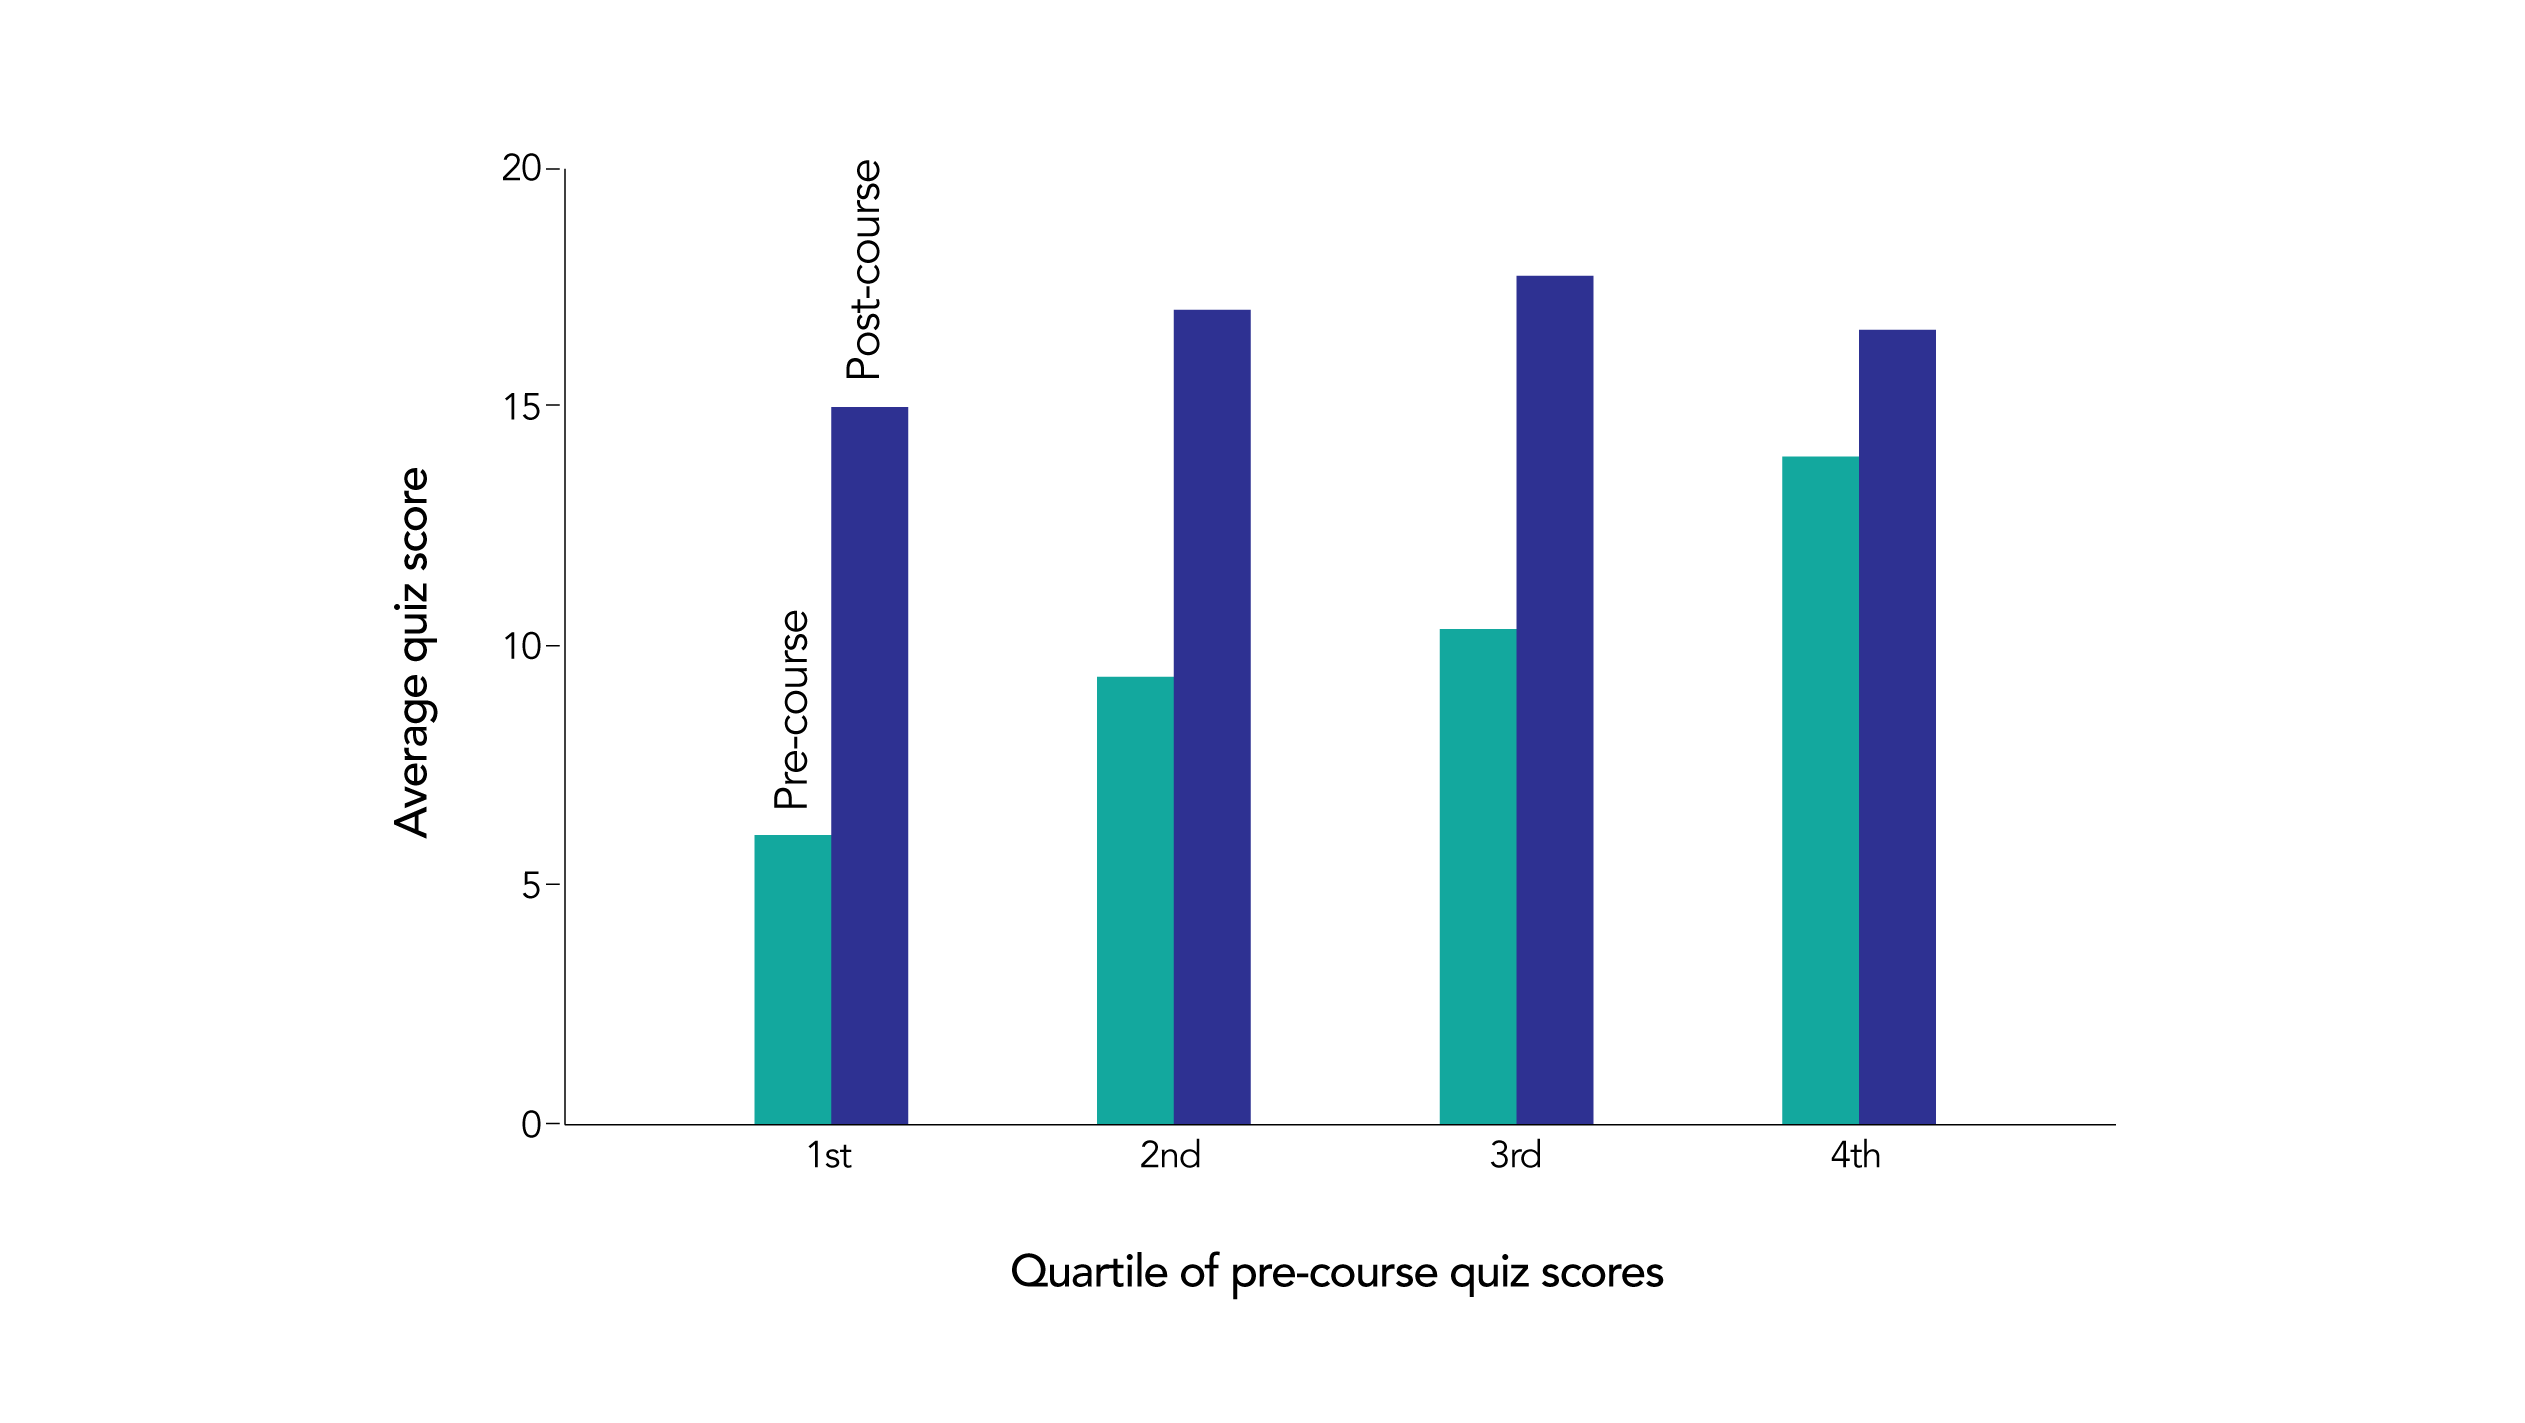 Average Quiz Scores